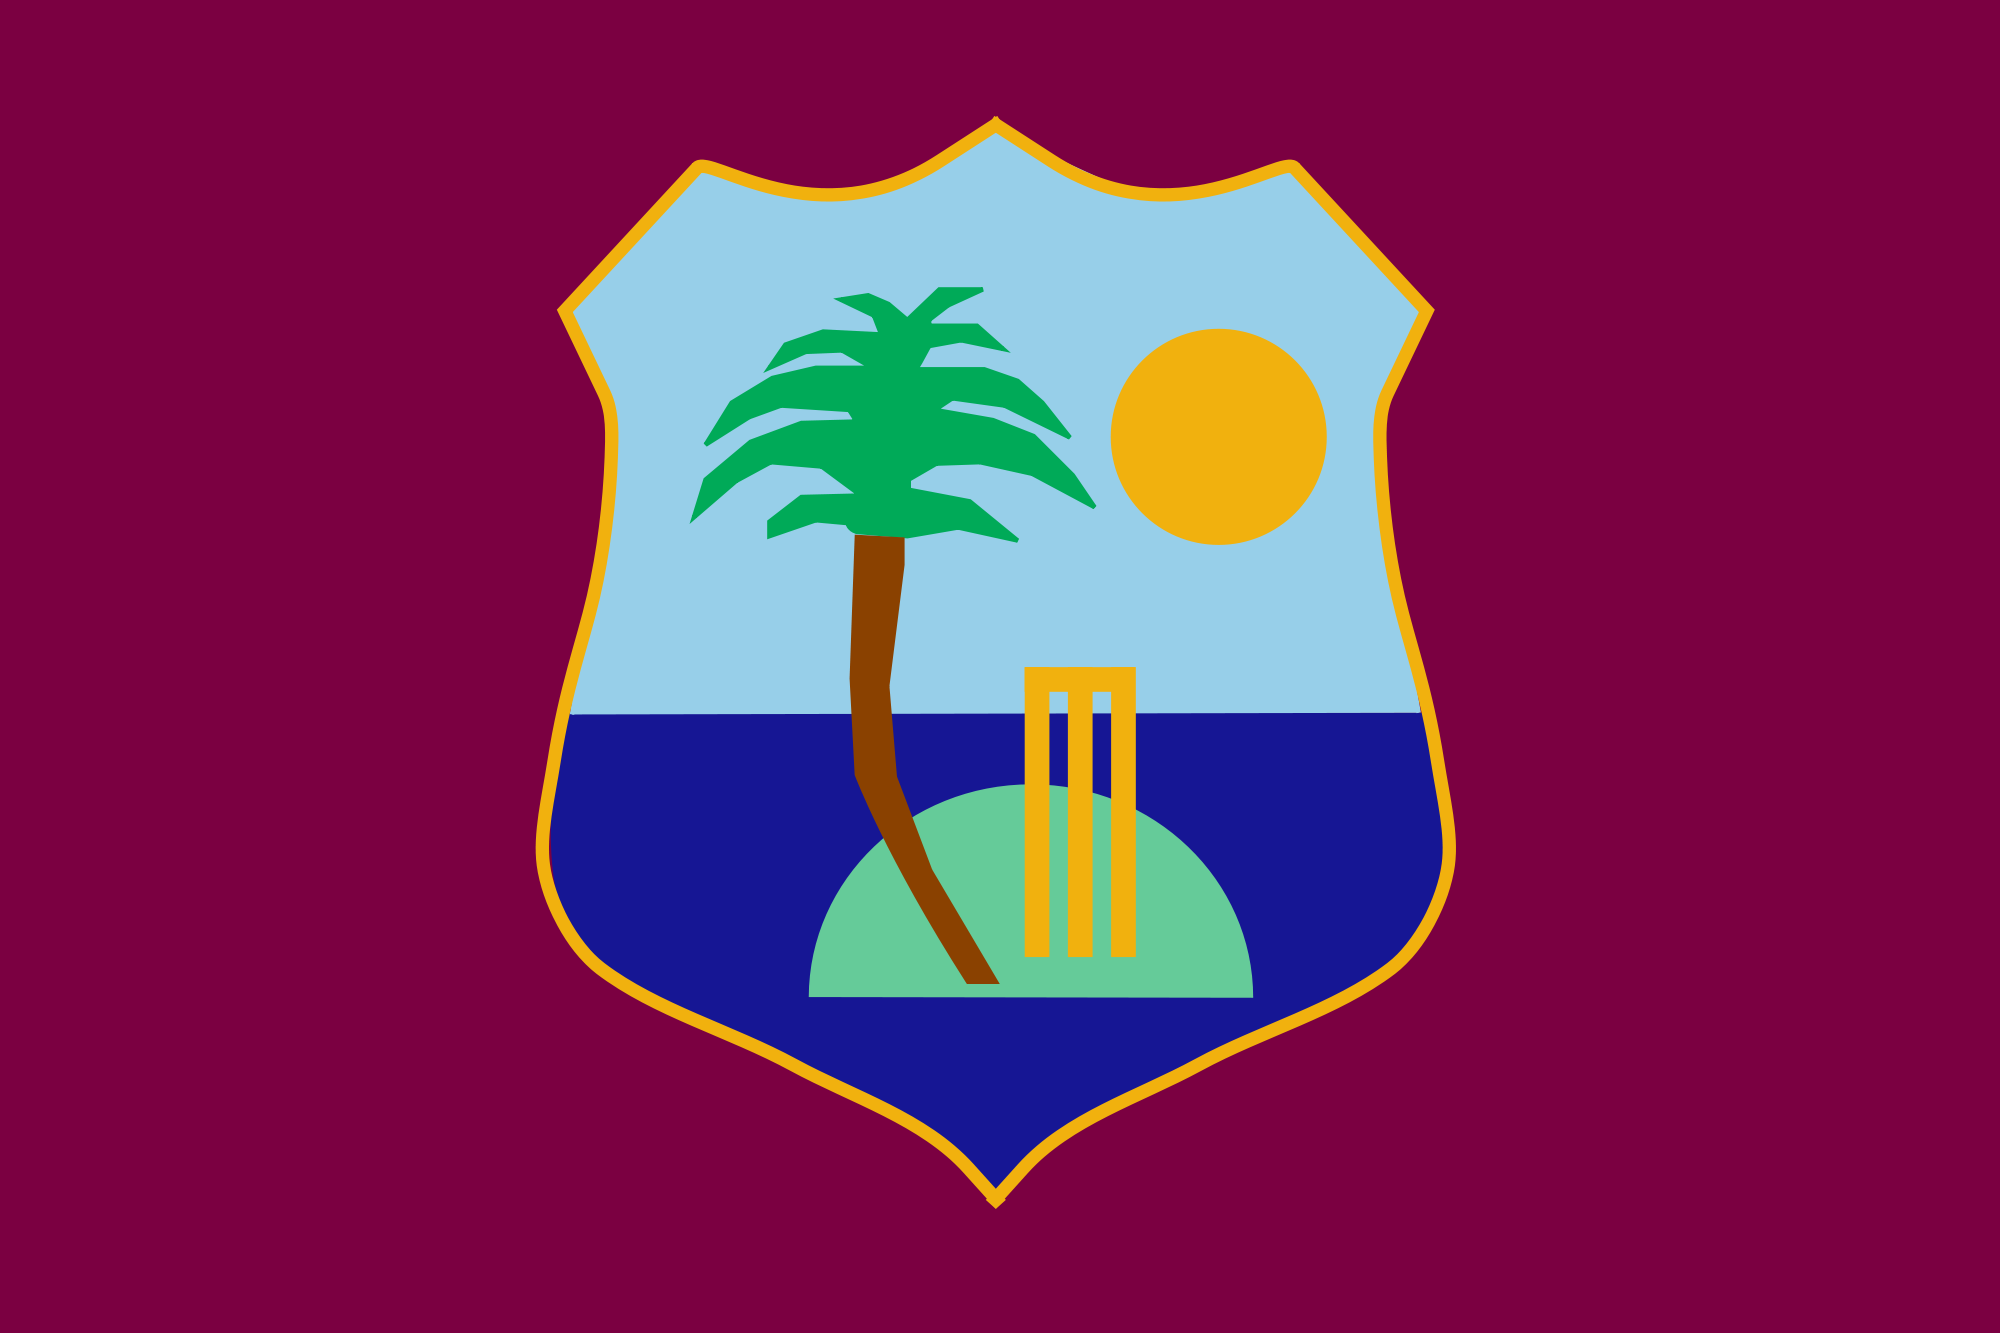 West Indies cricket team.